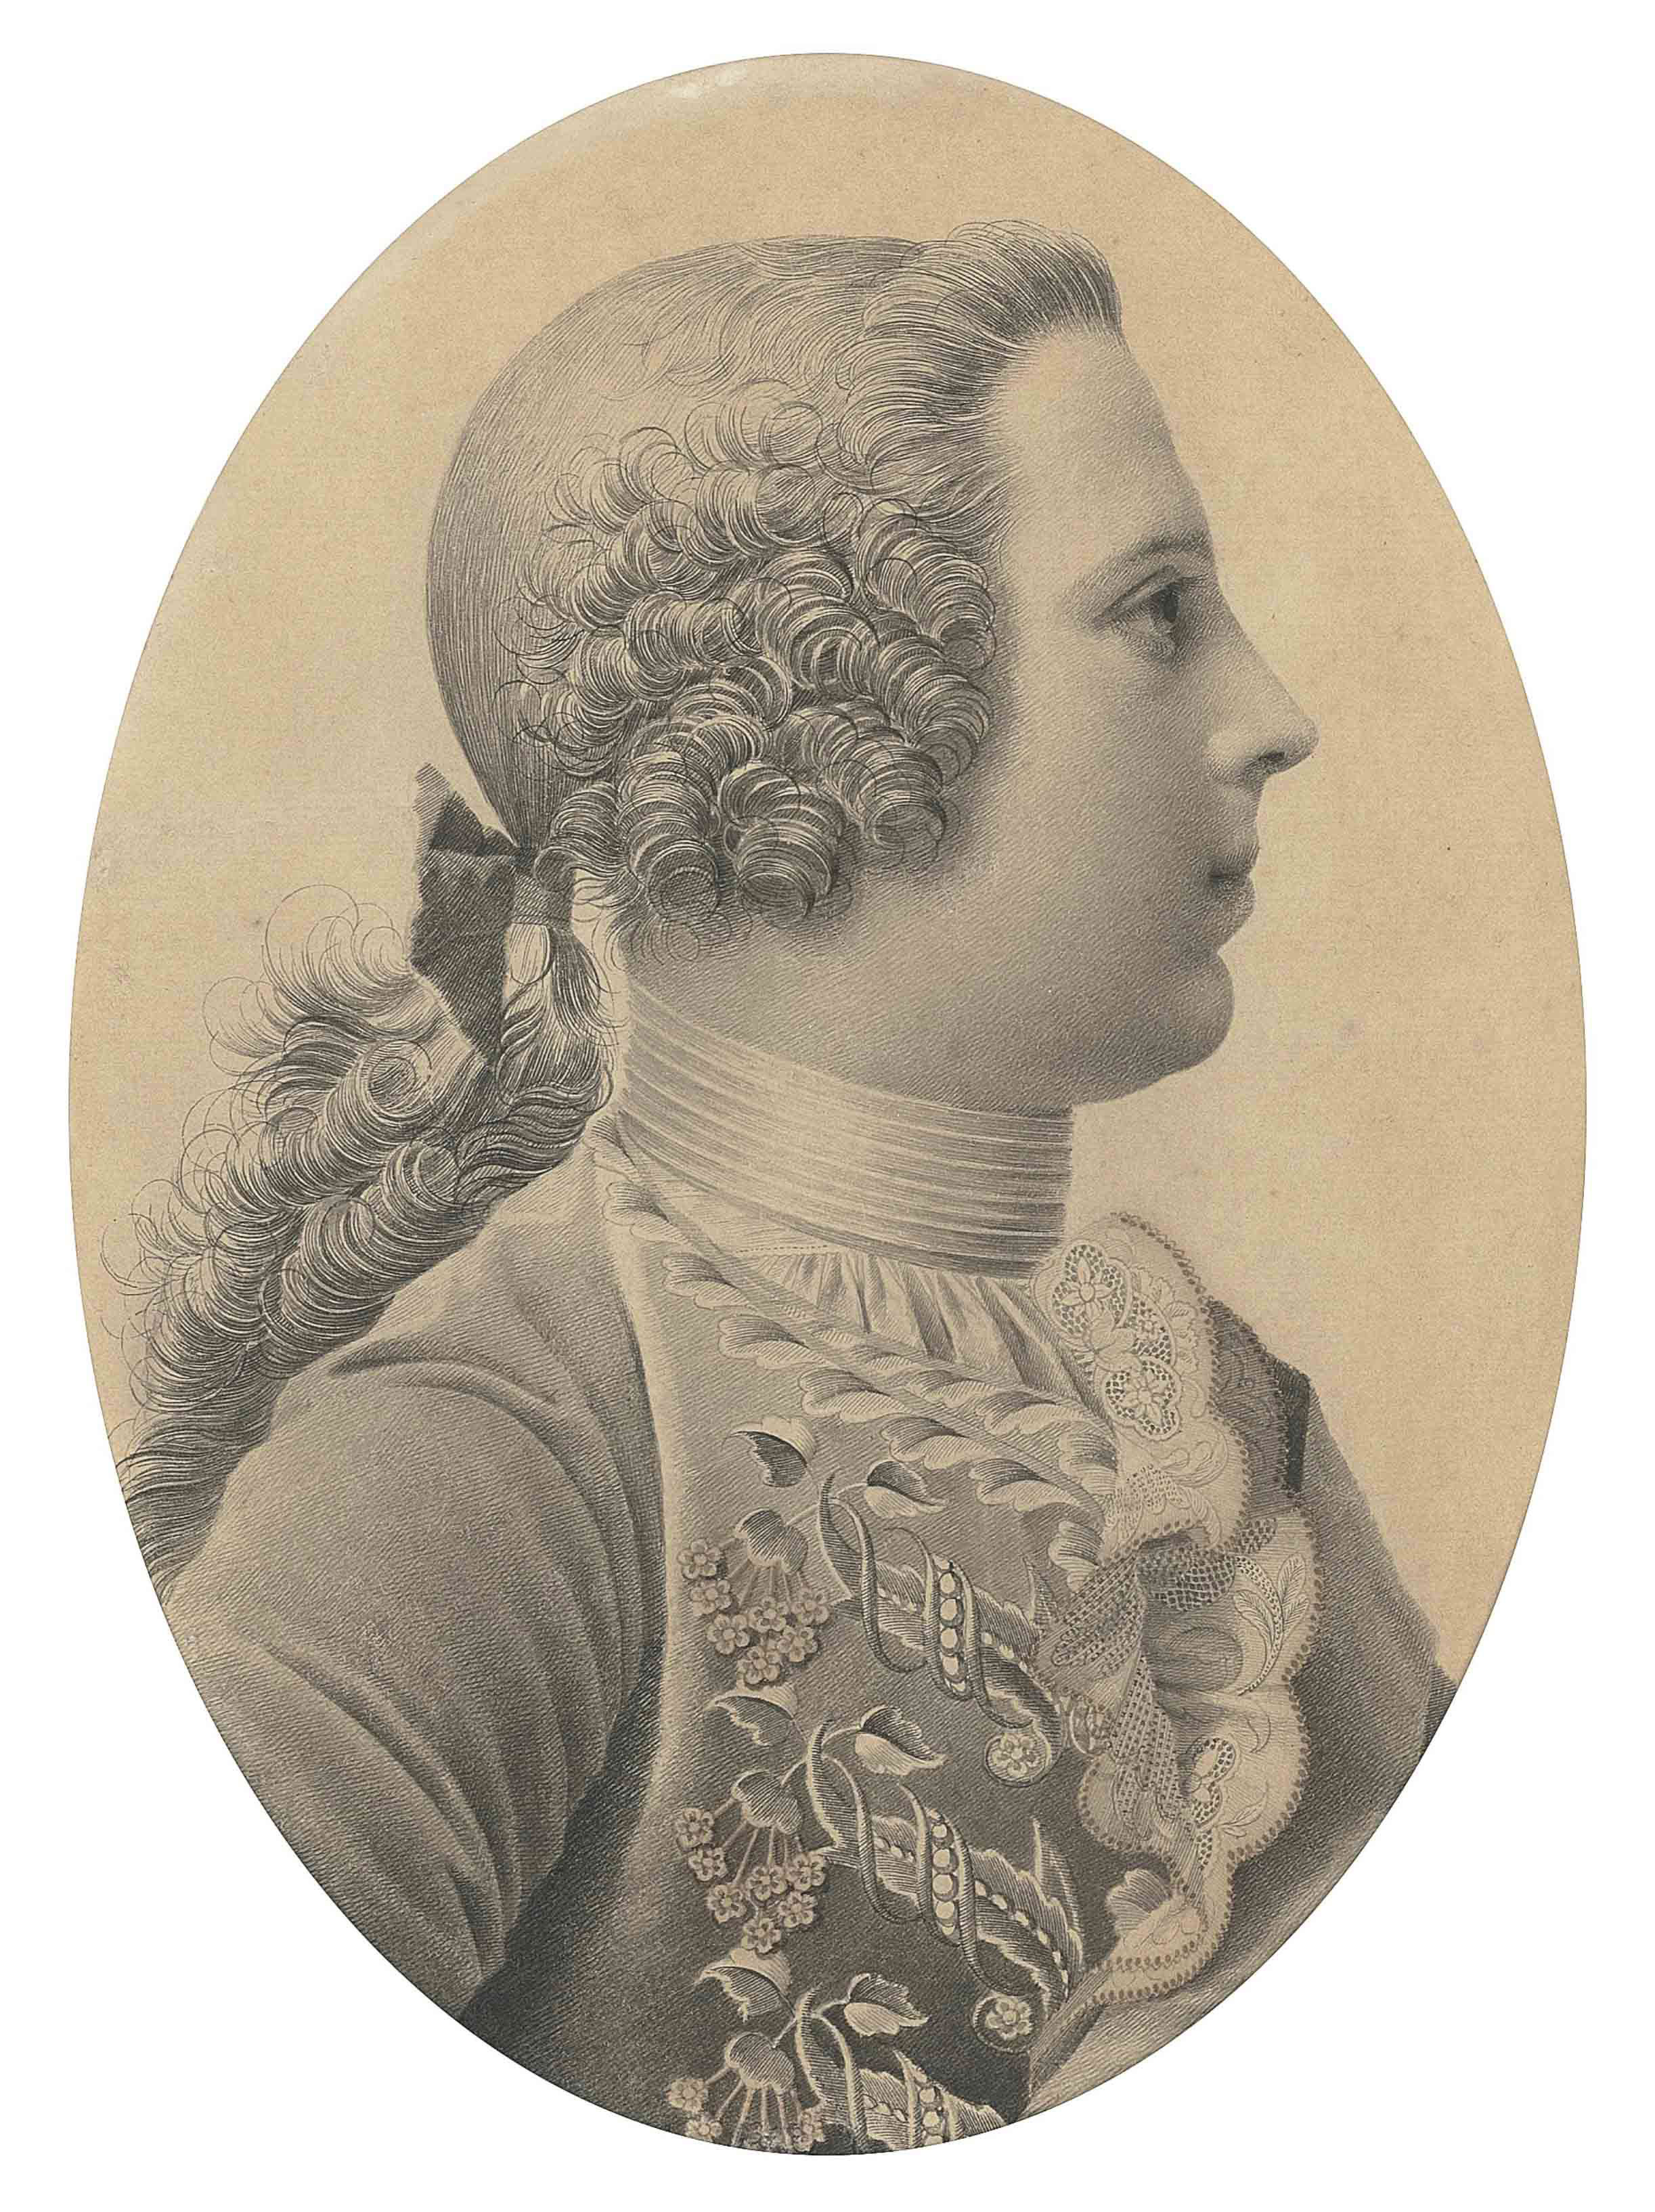 Portrait of Prince Charles Edward Stuart (1720-1788), 'Bonnie Prince Charlie', bust-length, in profile, facing to the right